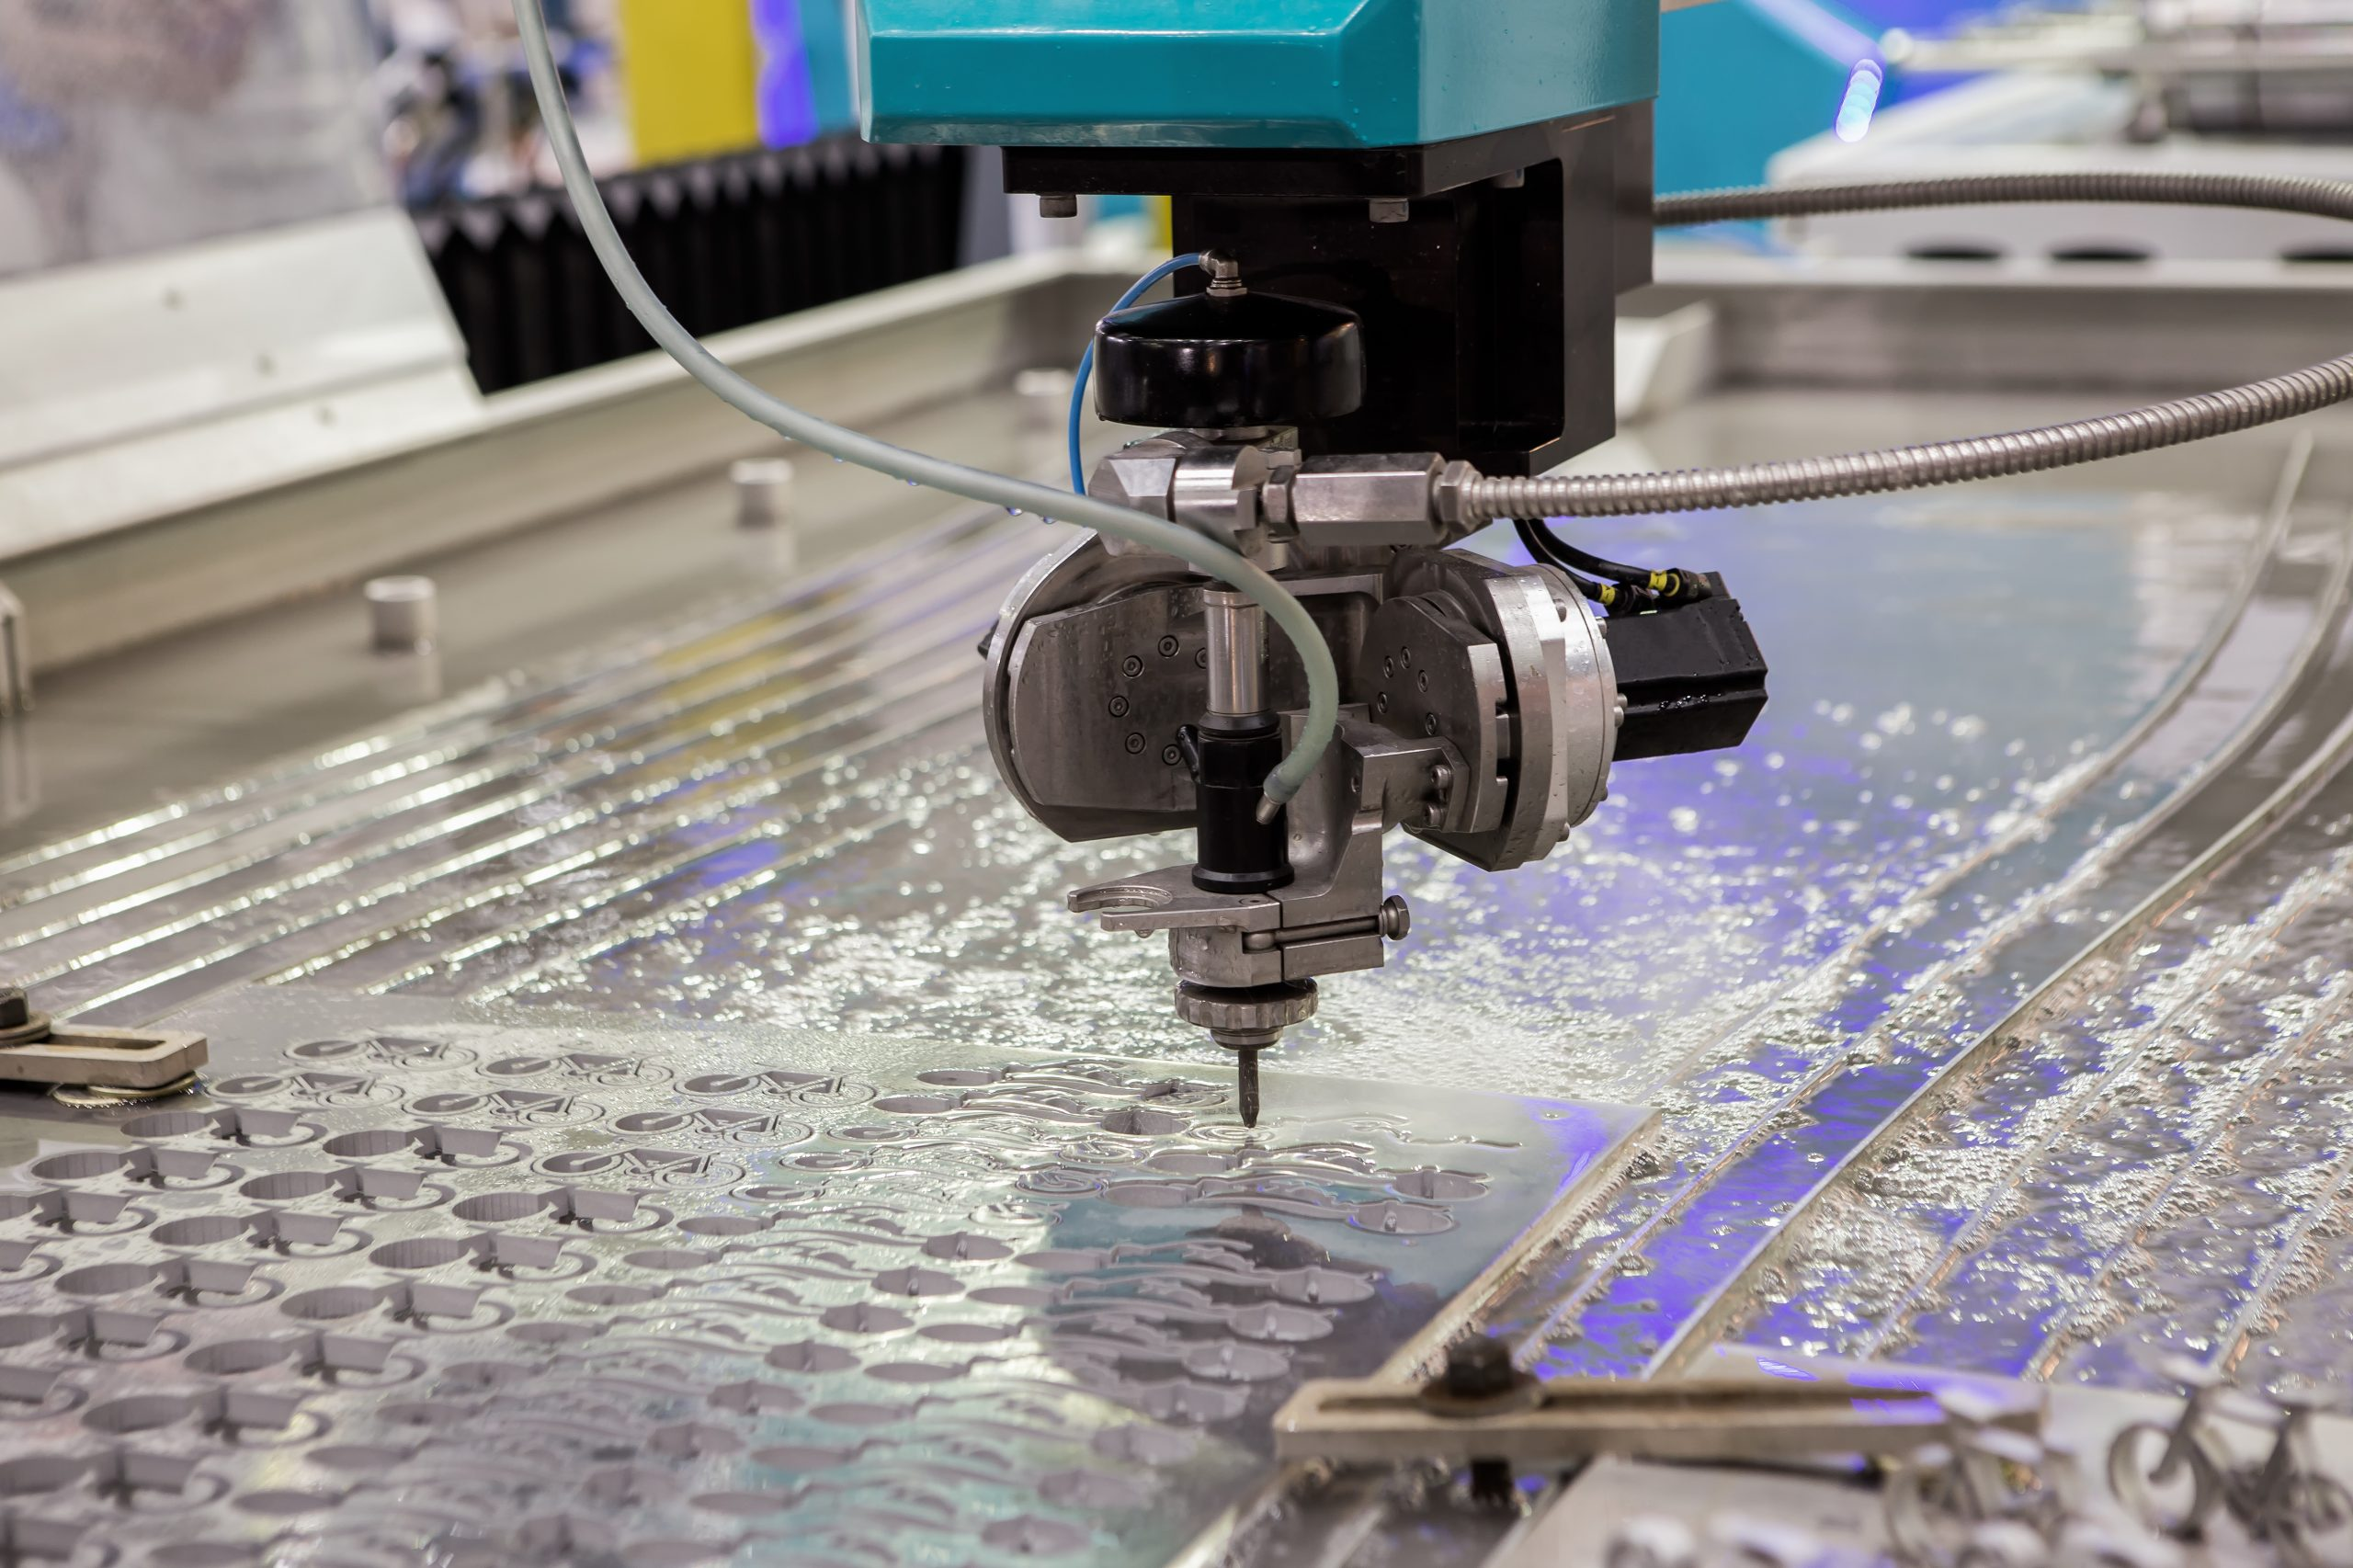 The water jet cutting CNC machine in working